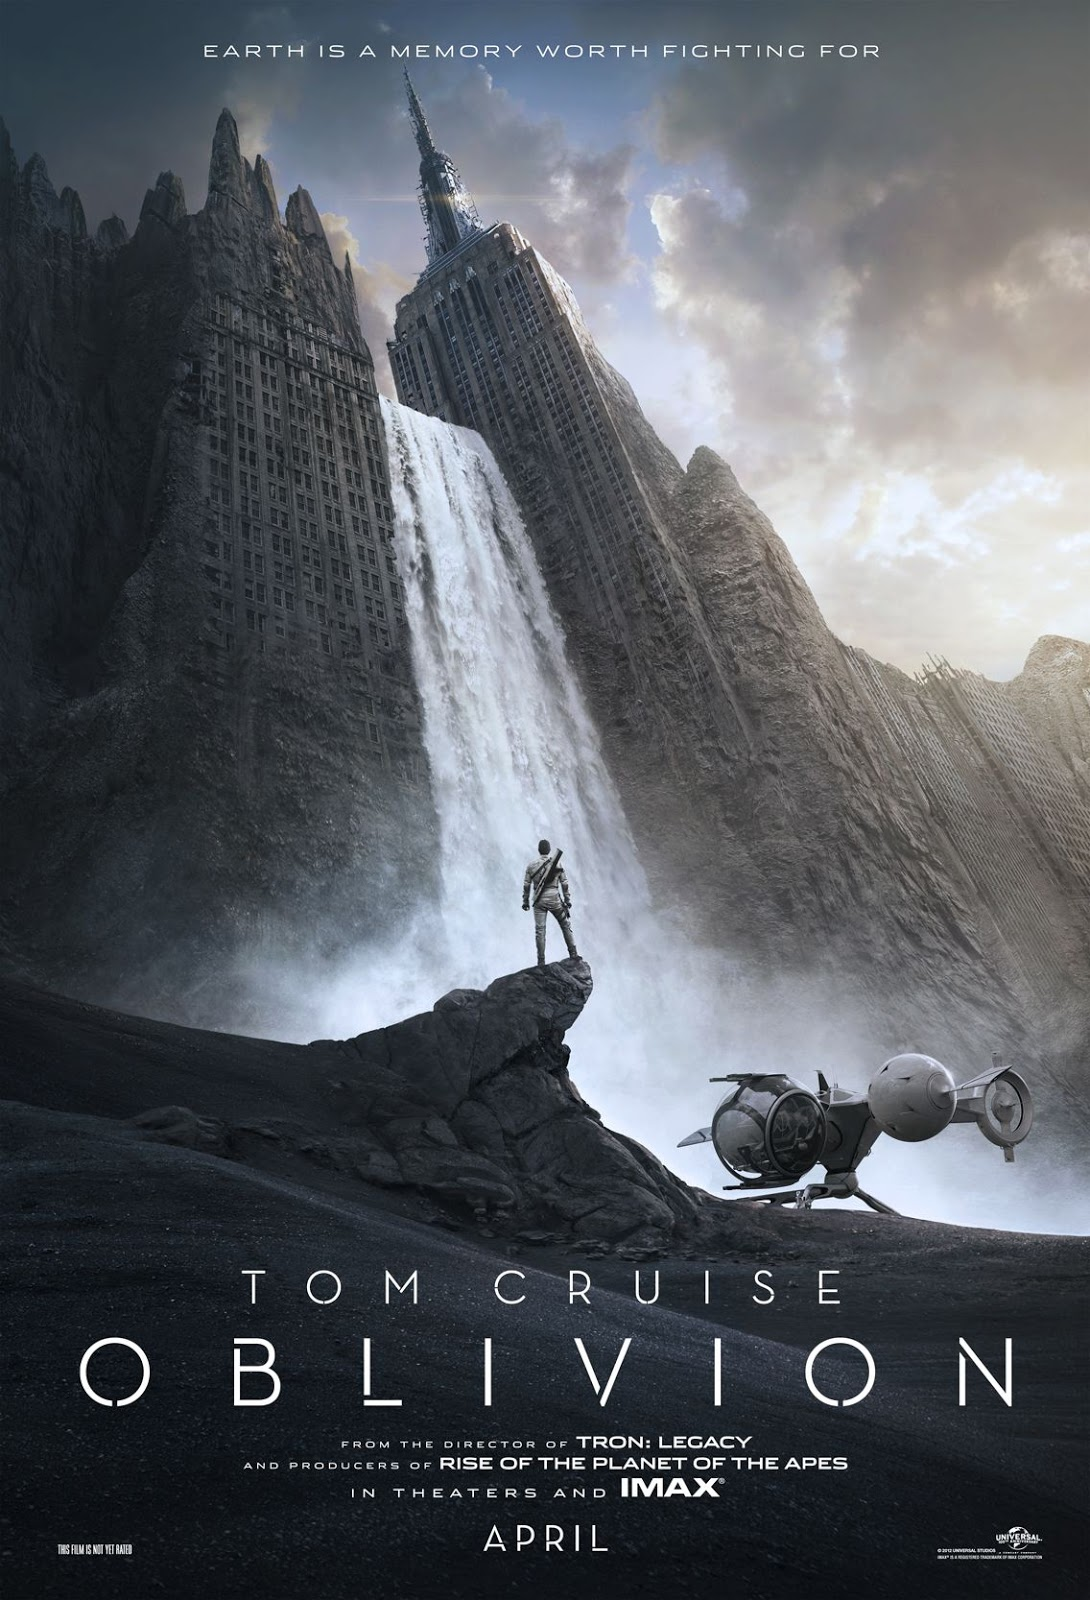 Affiche officielle du film de science-fiction 2013 Oblivion avec Tom Cruze en HD (Haute Définition).